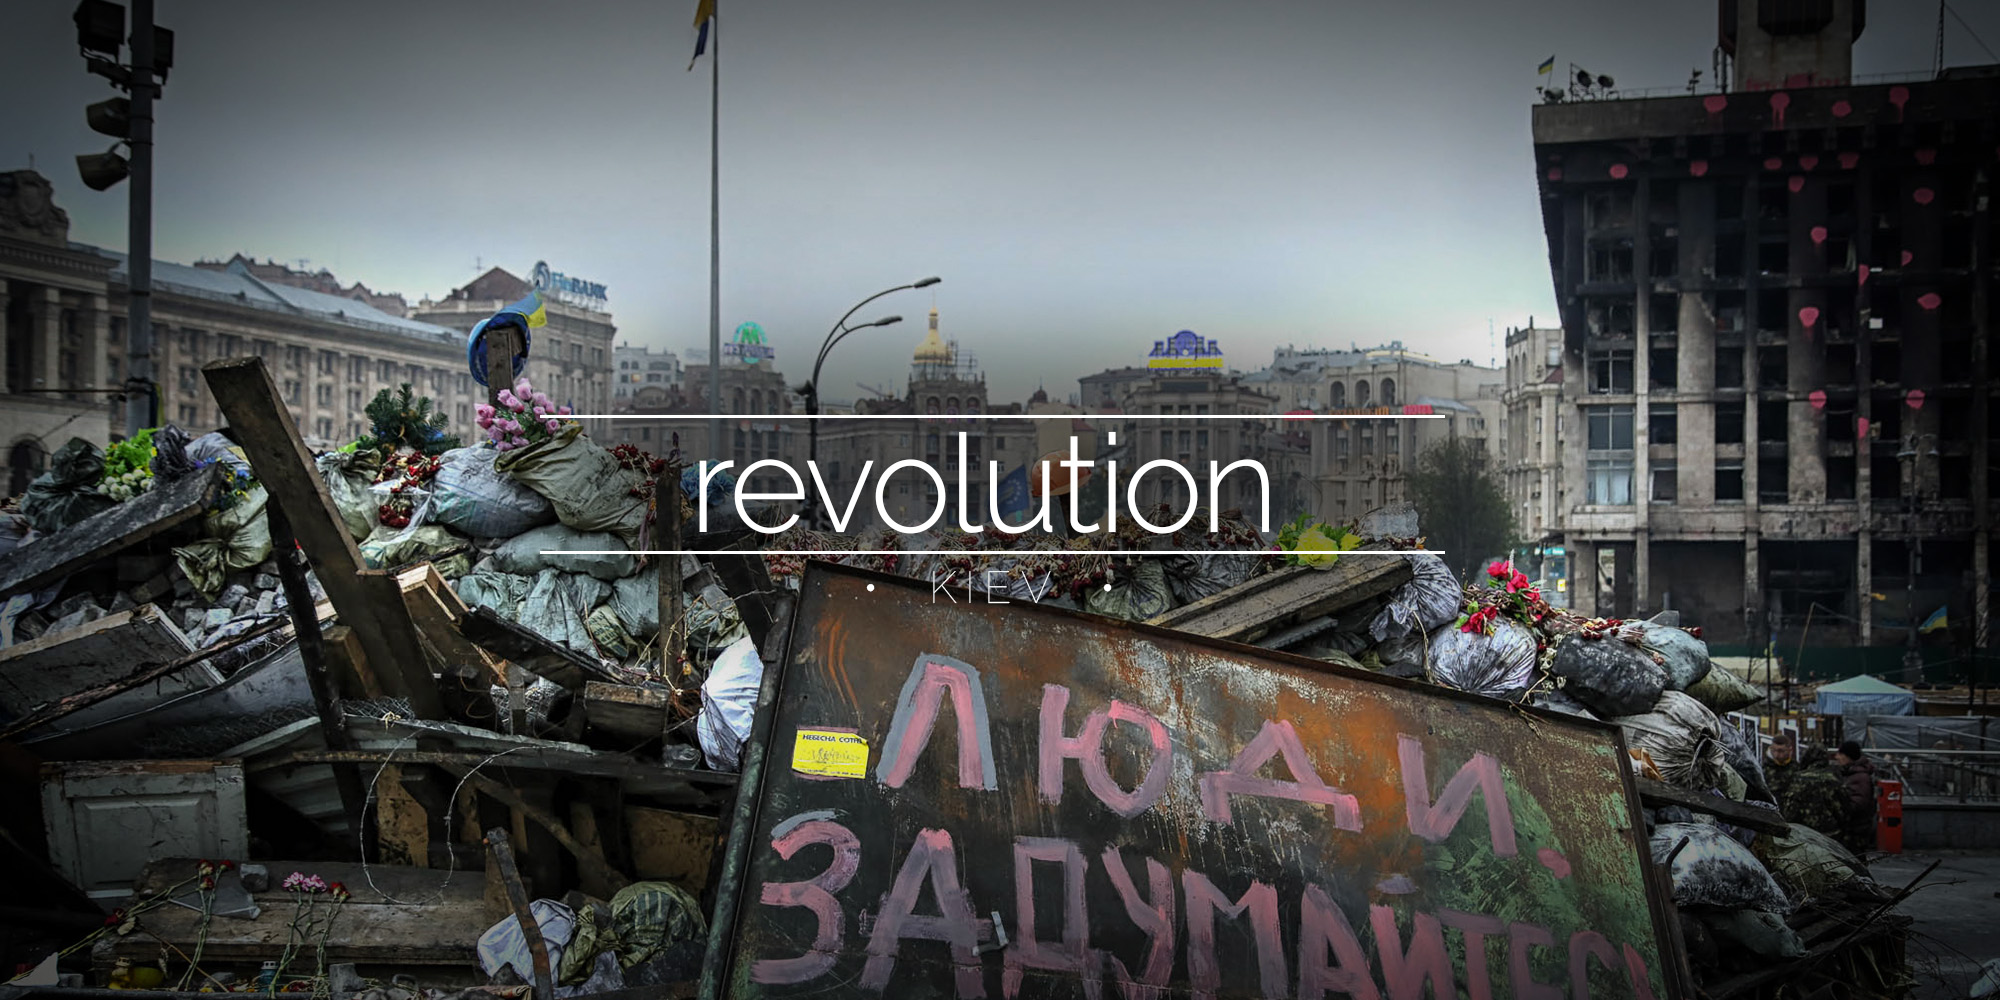 The Revolution - Kiev, Ukraine